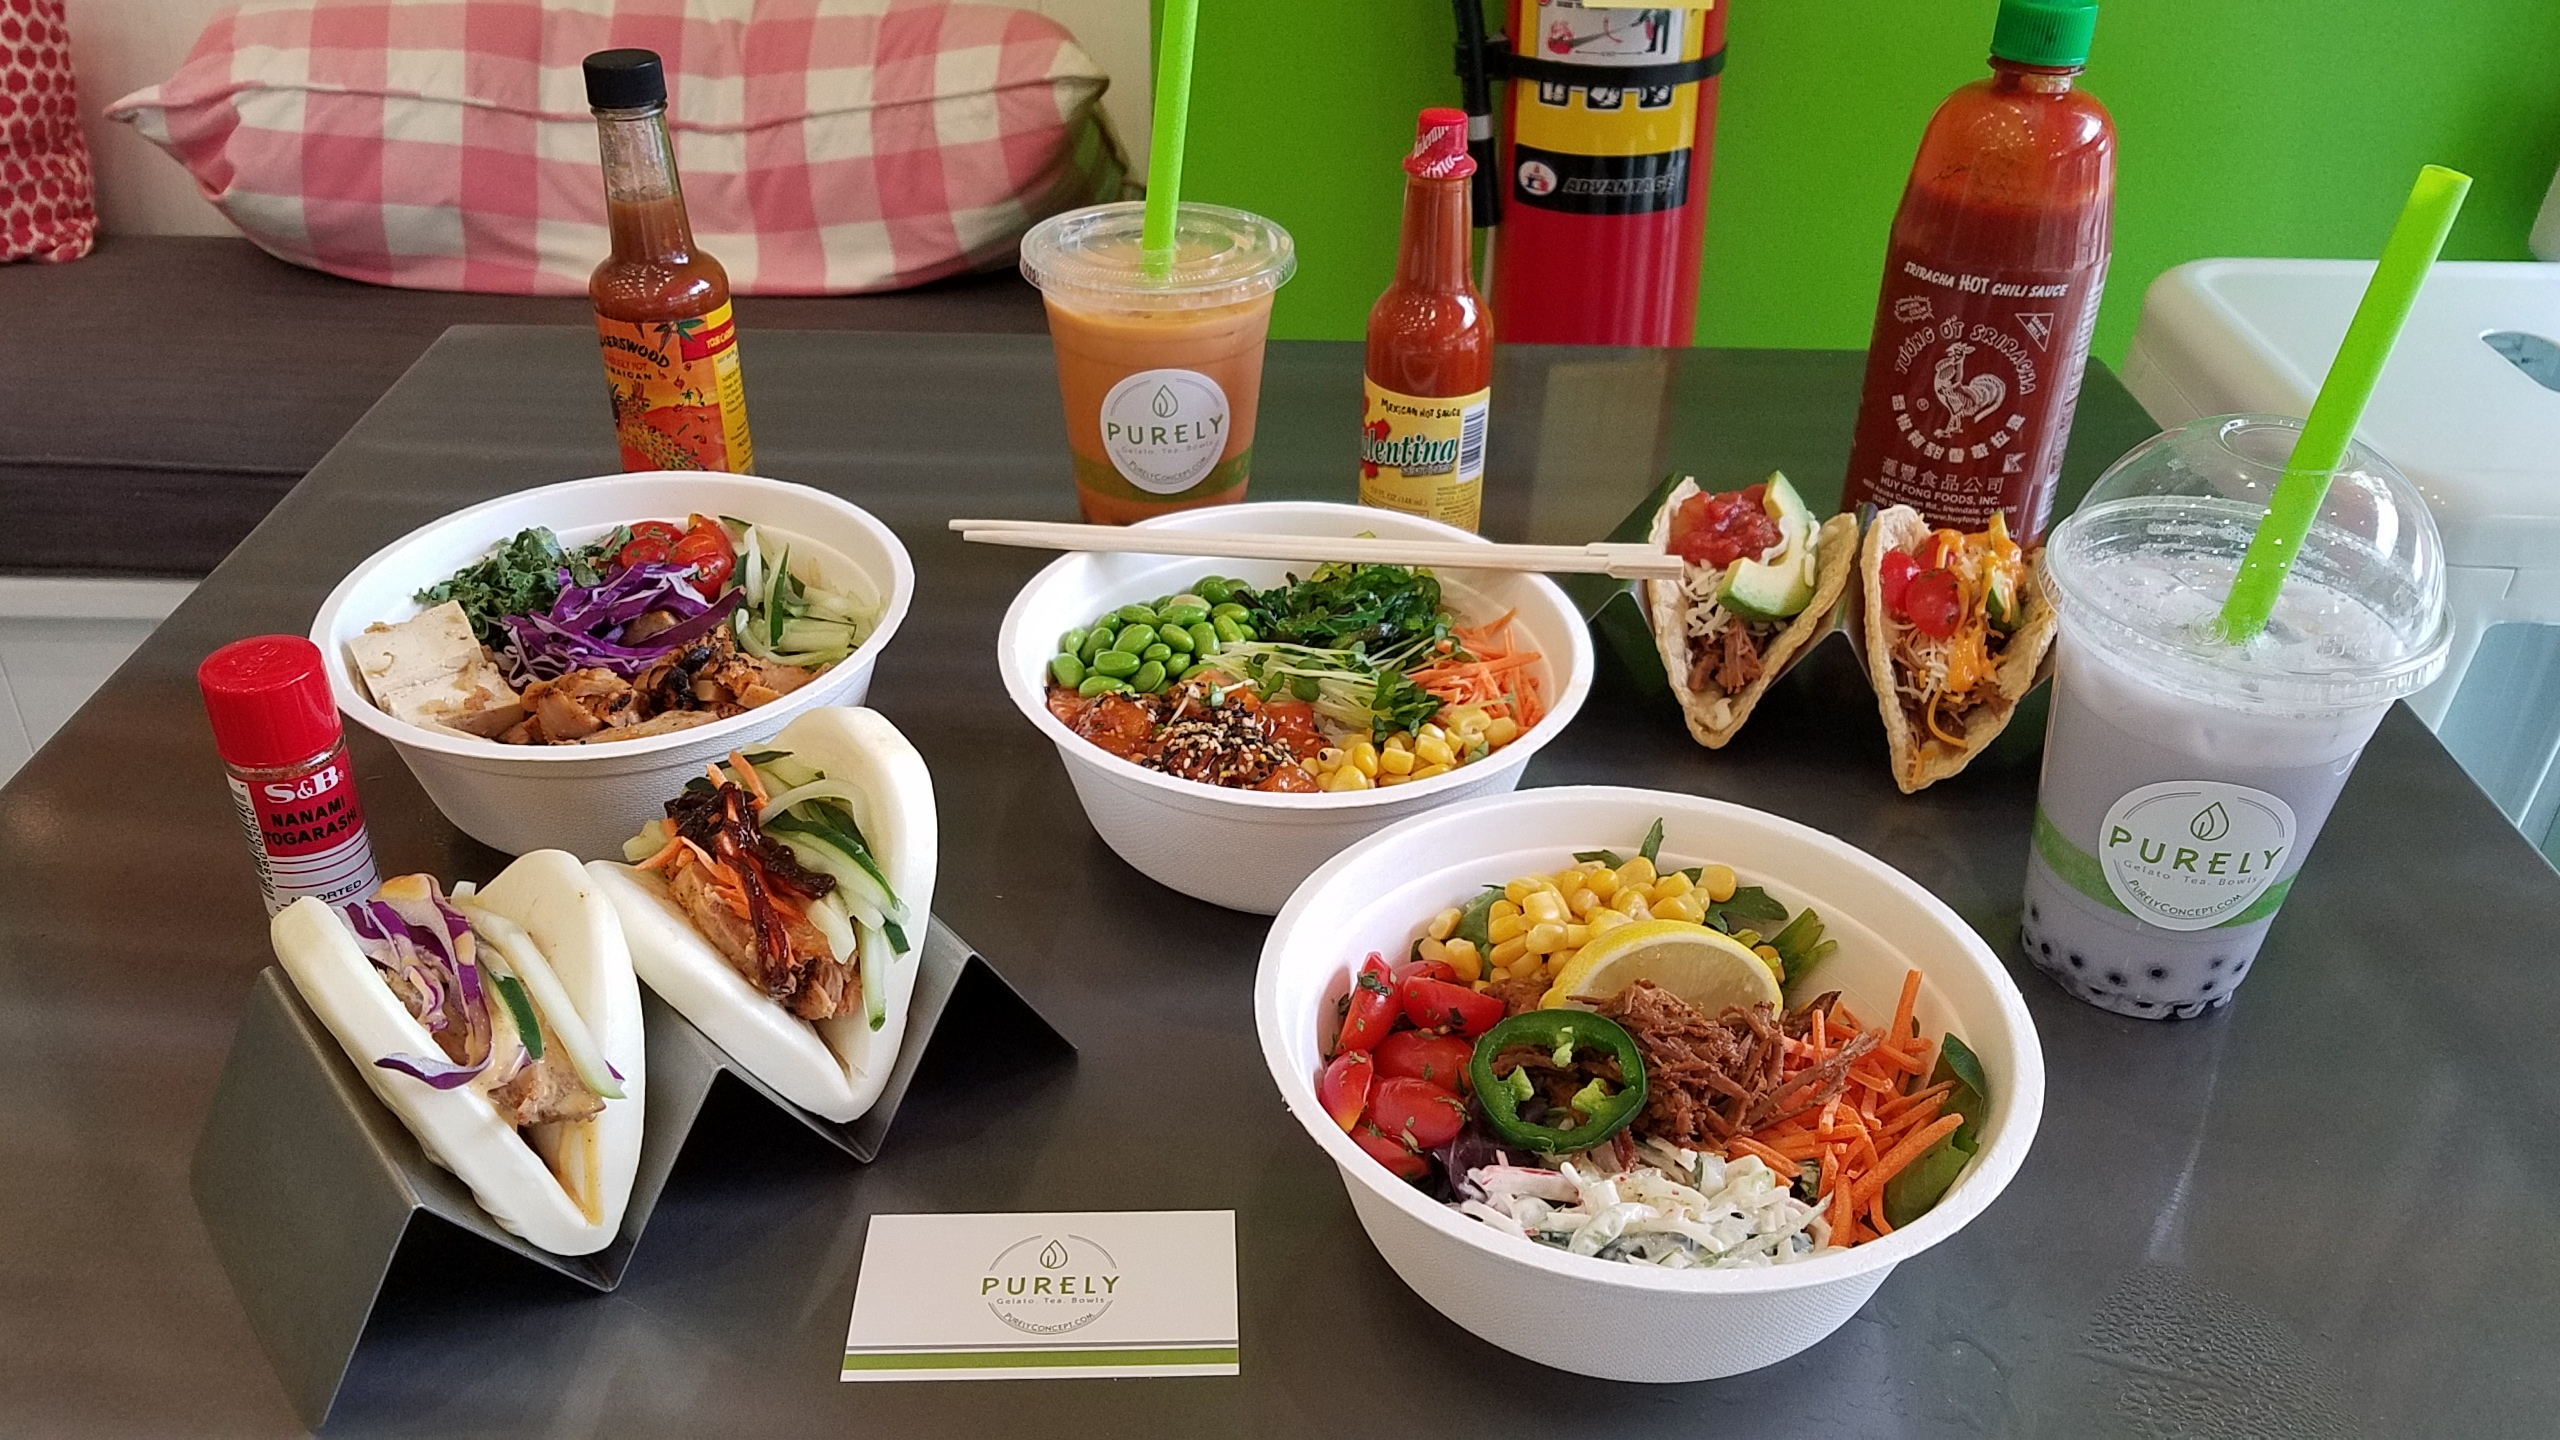 Want Fresh, Fast, and Healthy? Purely is the Place to Be